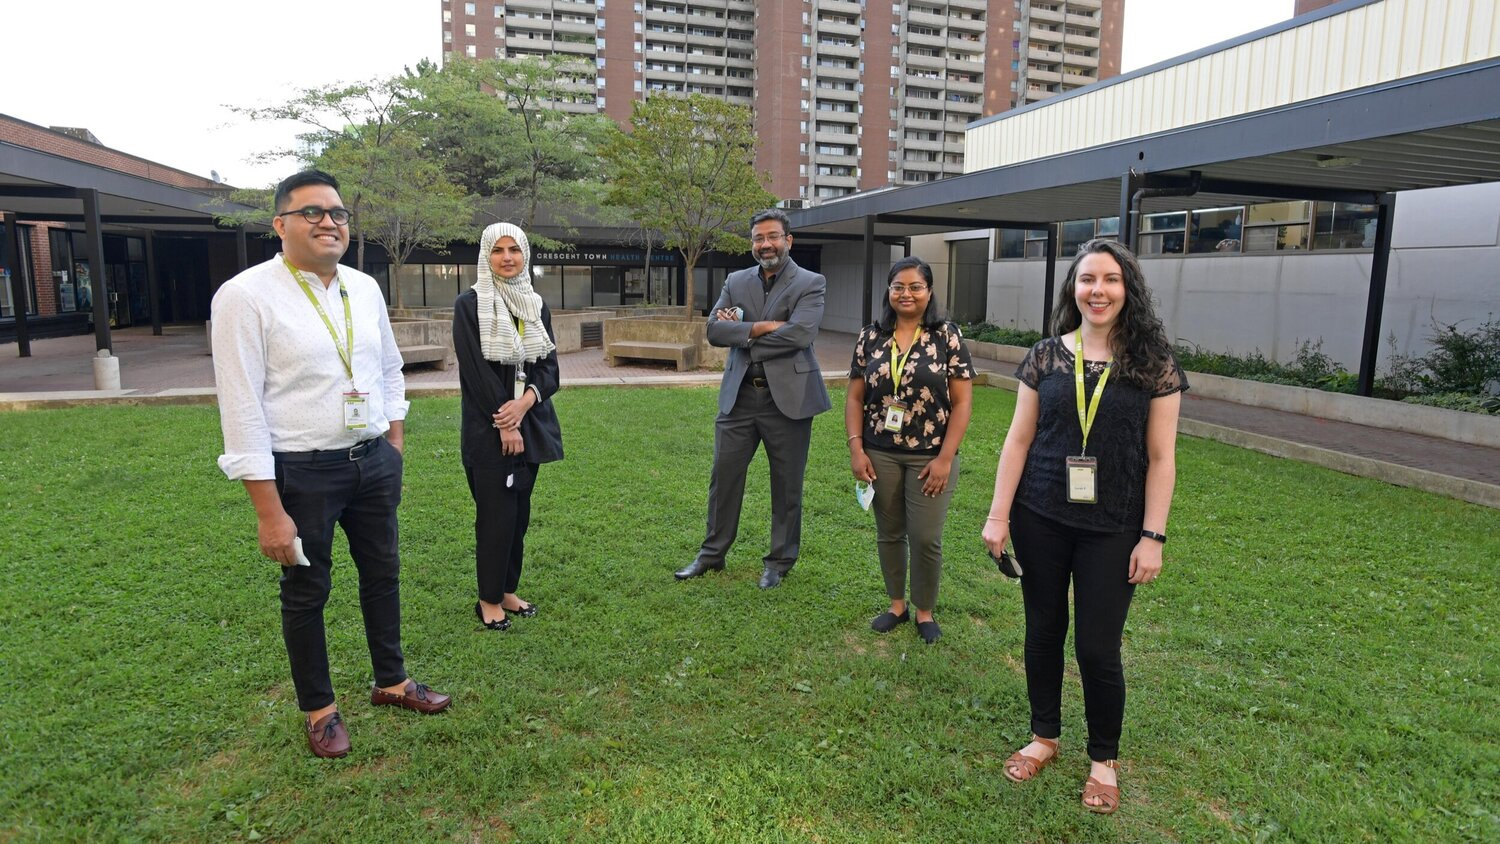 From left, Nadjib Alamyar, supervisor of newcomer coordinated care; Irum Nazir, case counsellor specialist; Mohan Doss, director of newcomer services; Tharnya Sivanithy, case counsellor specialist; and Sarah Ferguson, case counsellor specialist at WoodGreen Community Services.